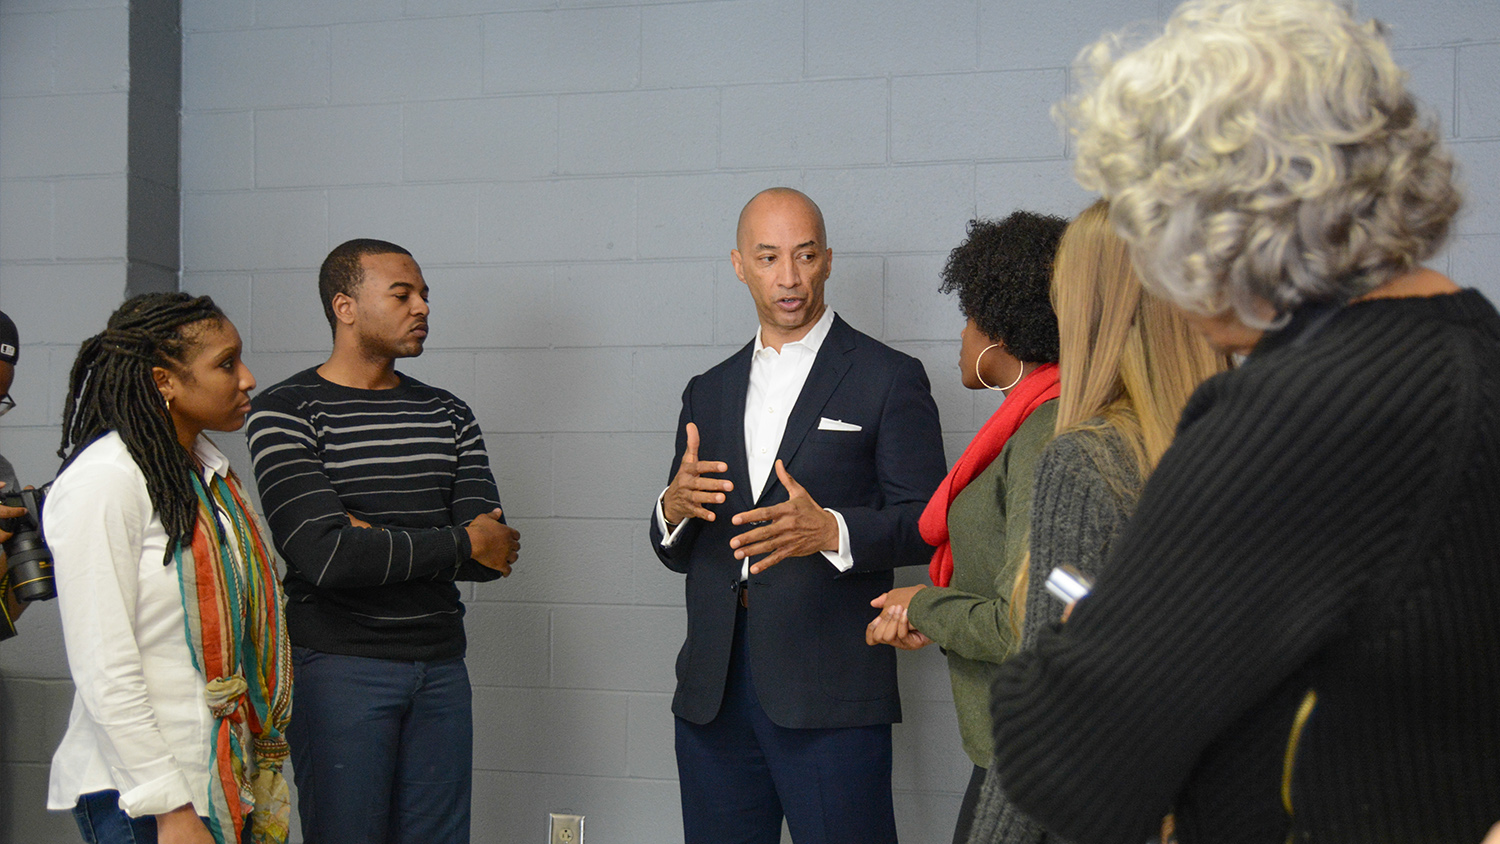 Byron Pitts discusses with a group of students